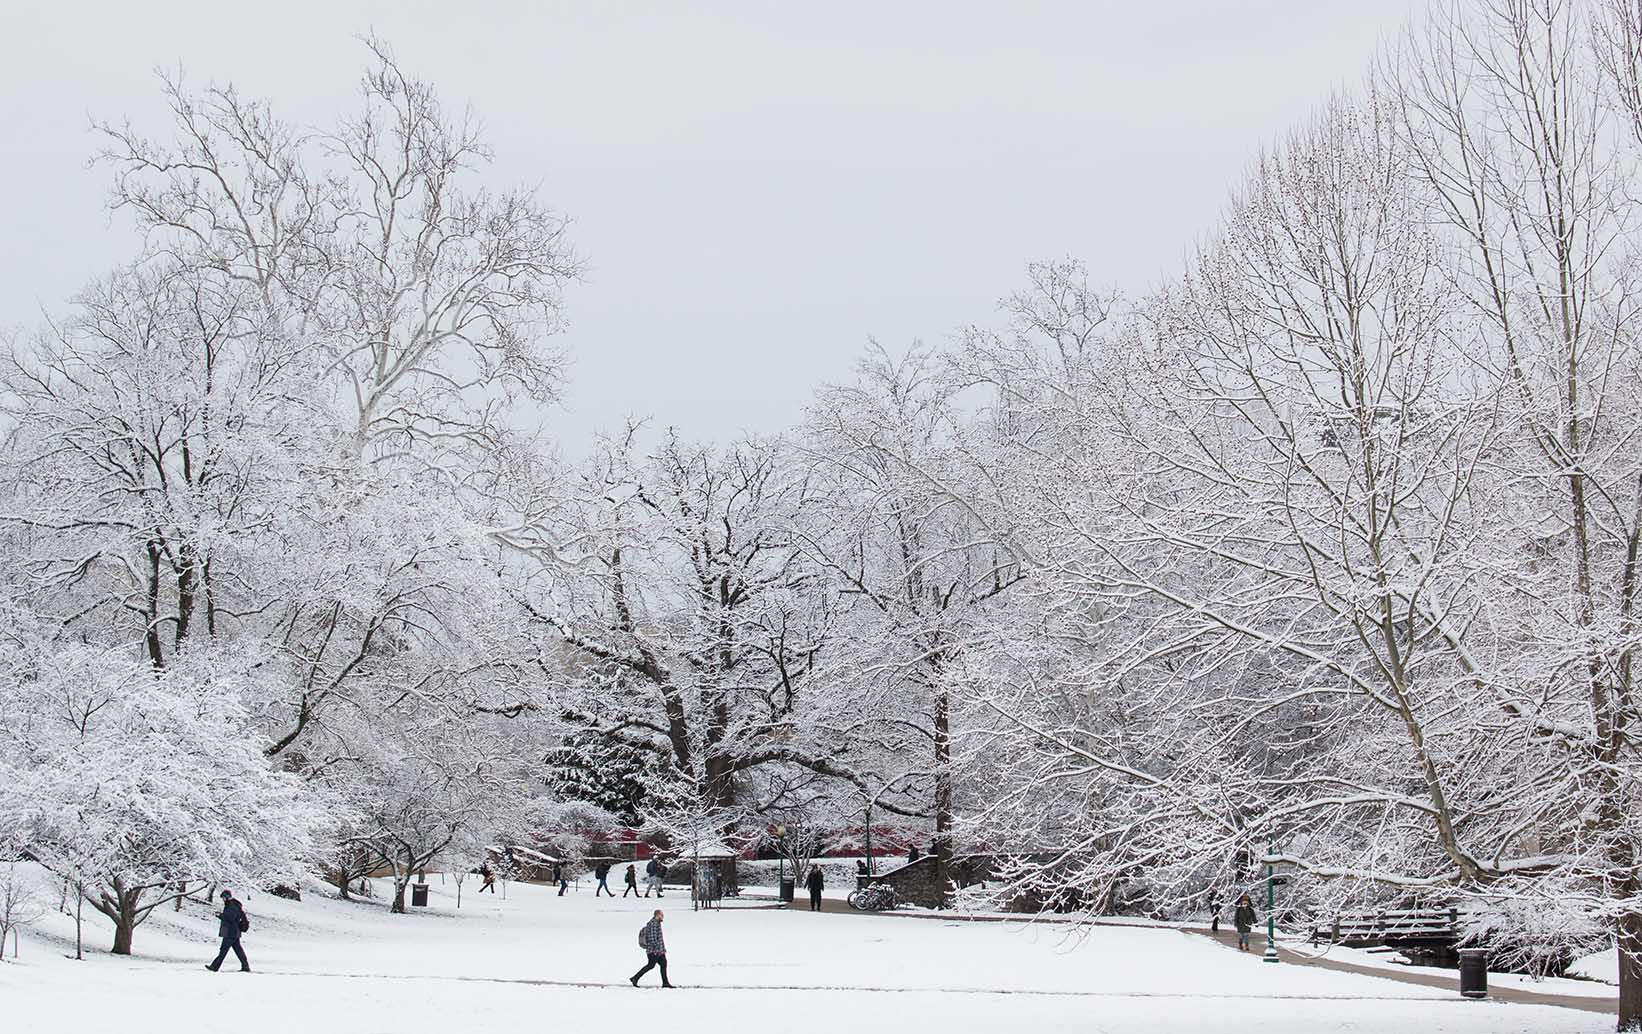 Snowy campus with students